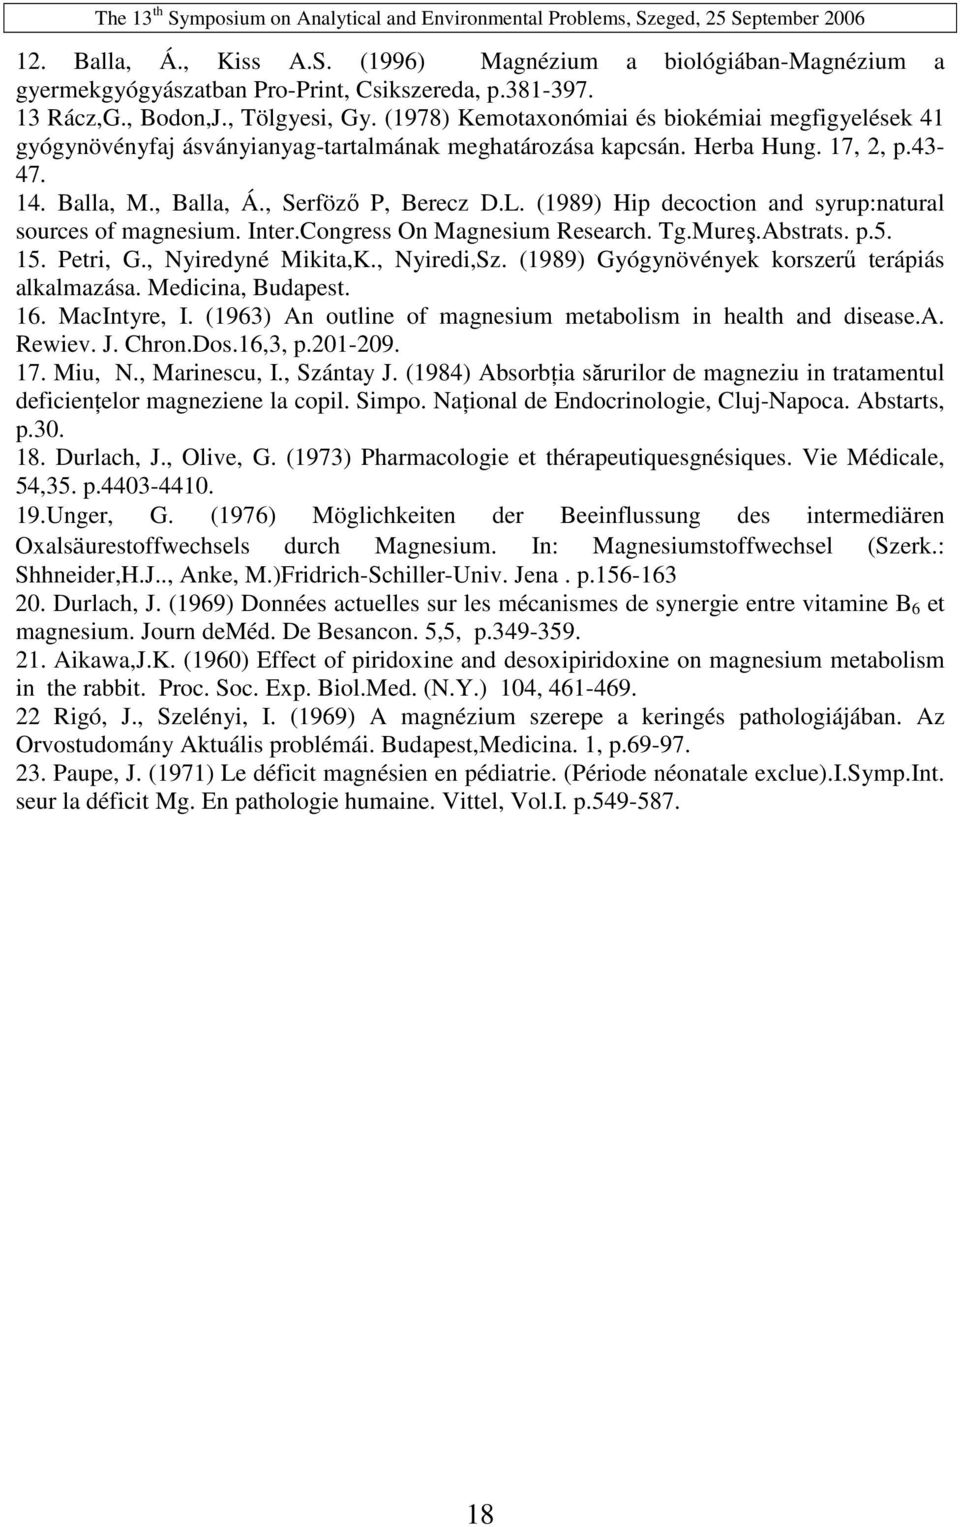 (1989) Hip decoction and syrup:natural sources of magnesium. Inter.Congress On Magnesium Research. Tg.Mureş.Abstrats. p.5. 15. Petri, G., Nyiredyné Mikita,K., Nyiredi,Sz.